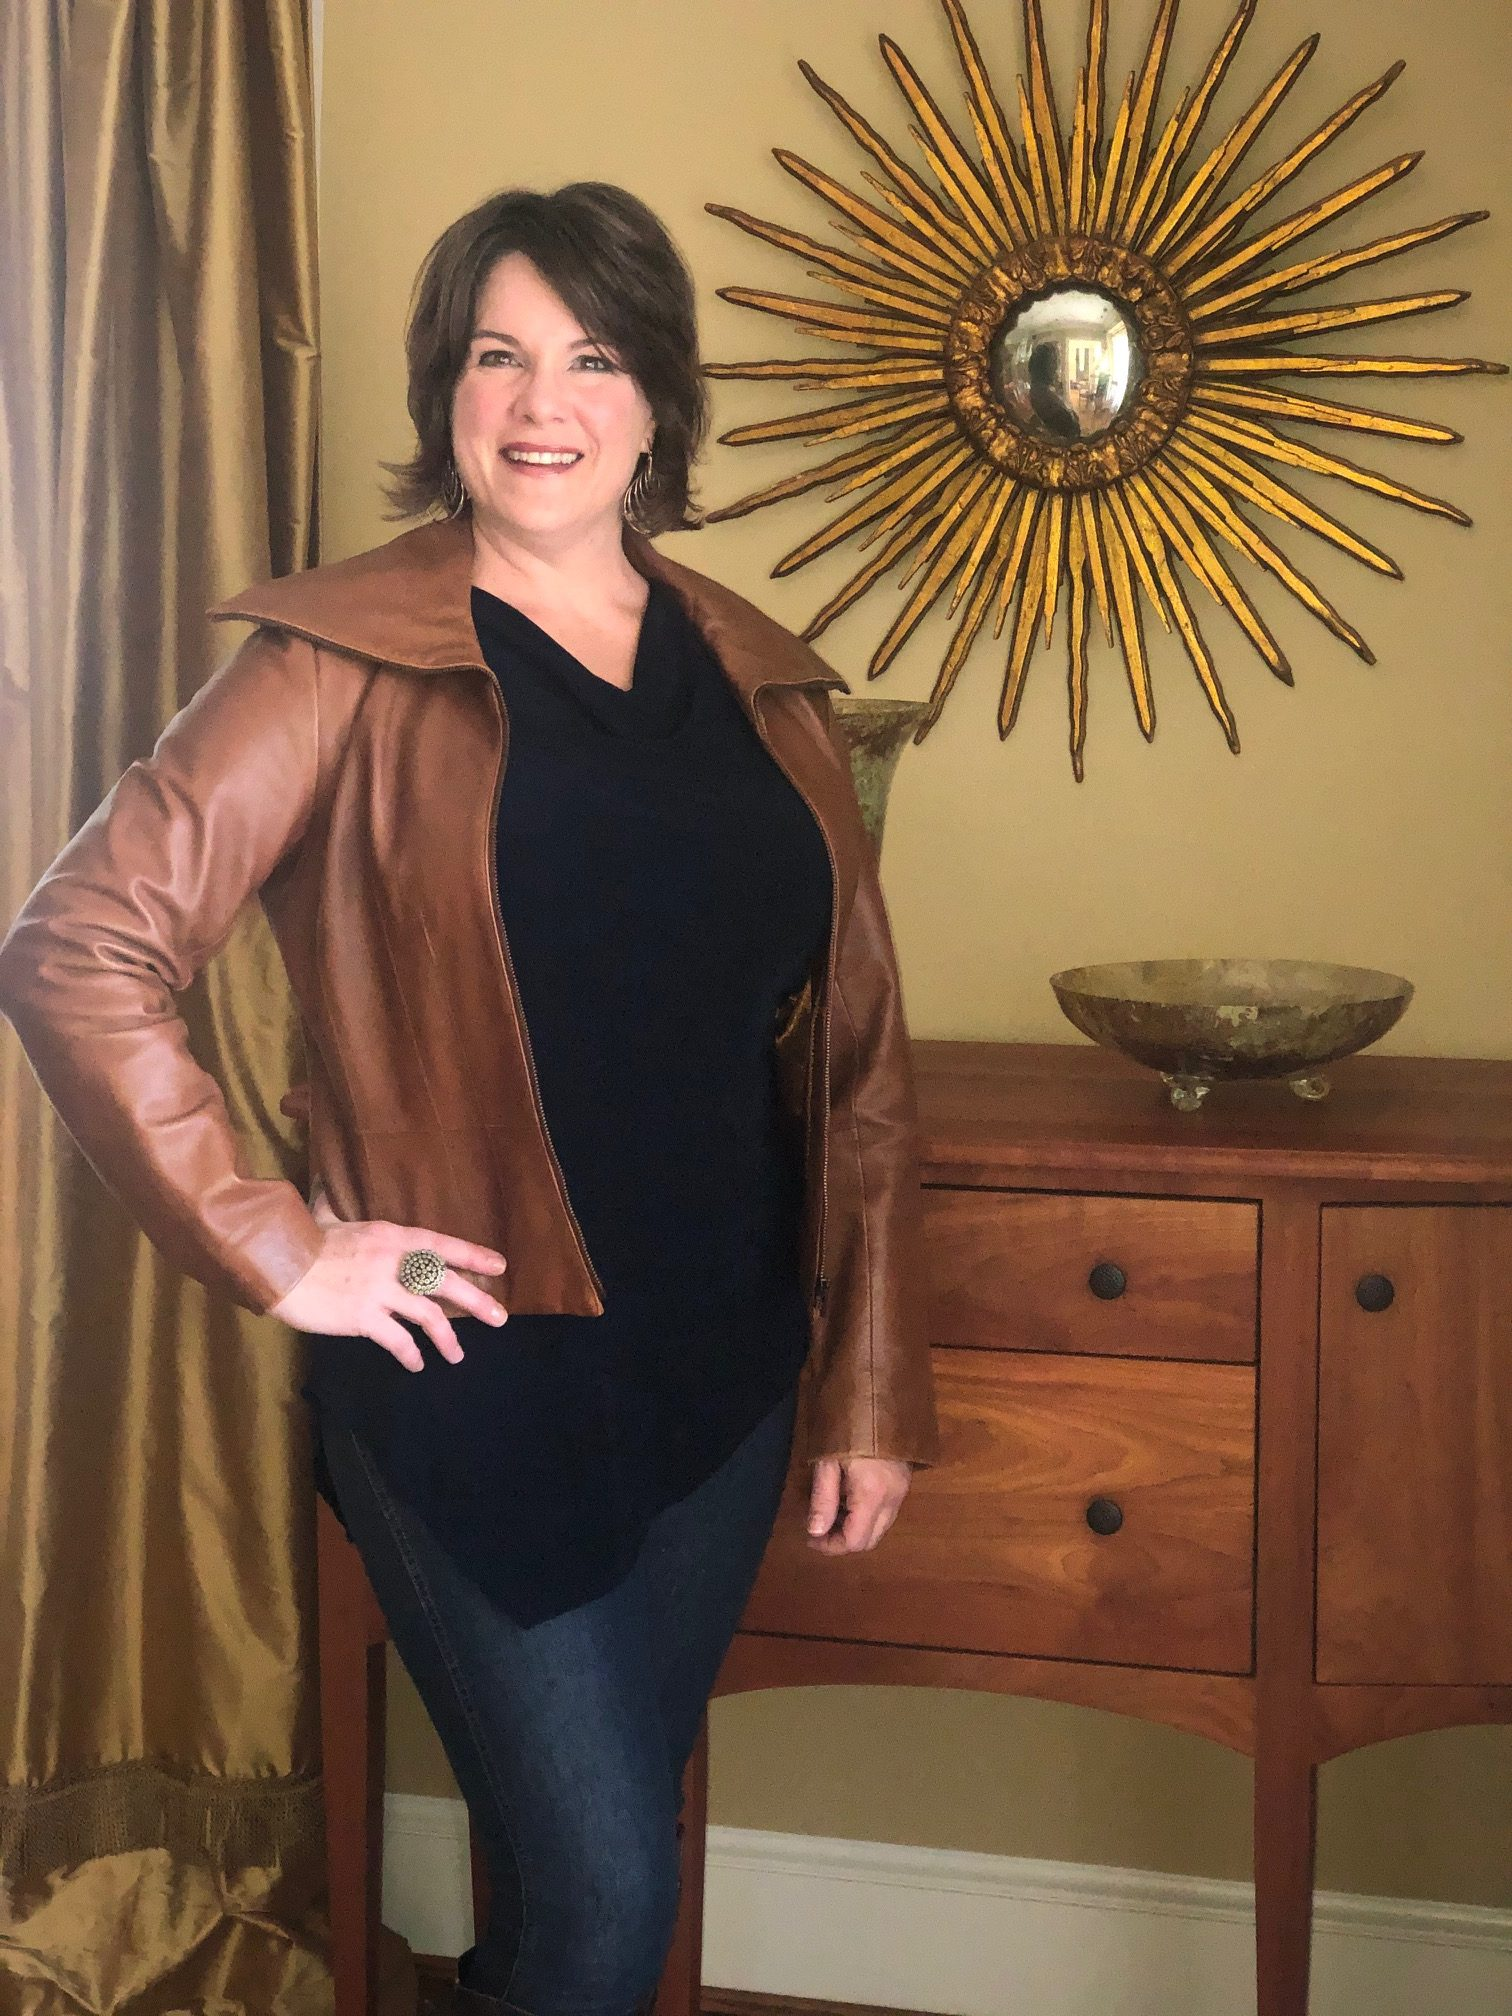 Image Makeover for Stay at Home Mom